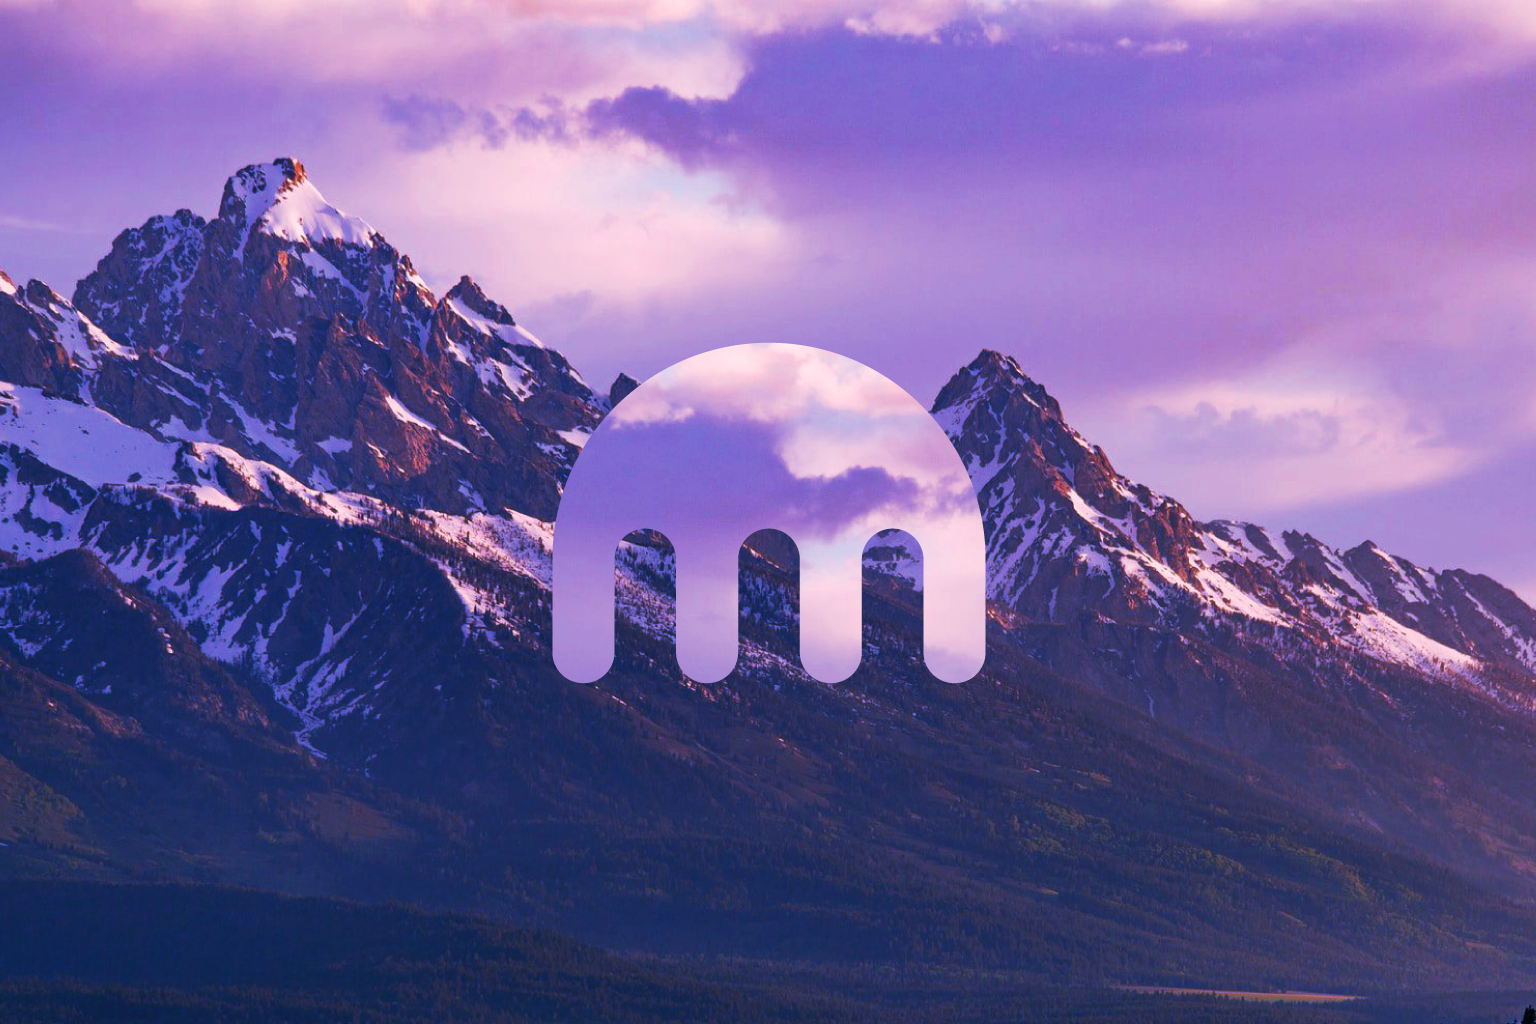 Kraken Financial announced the launch of Wyoming's First Crypto Bank